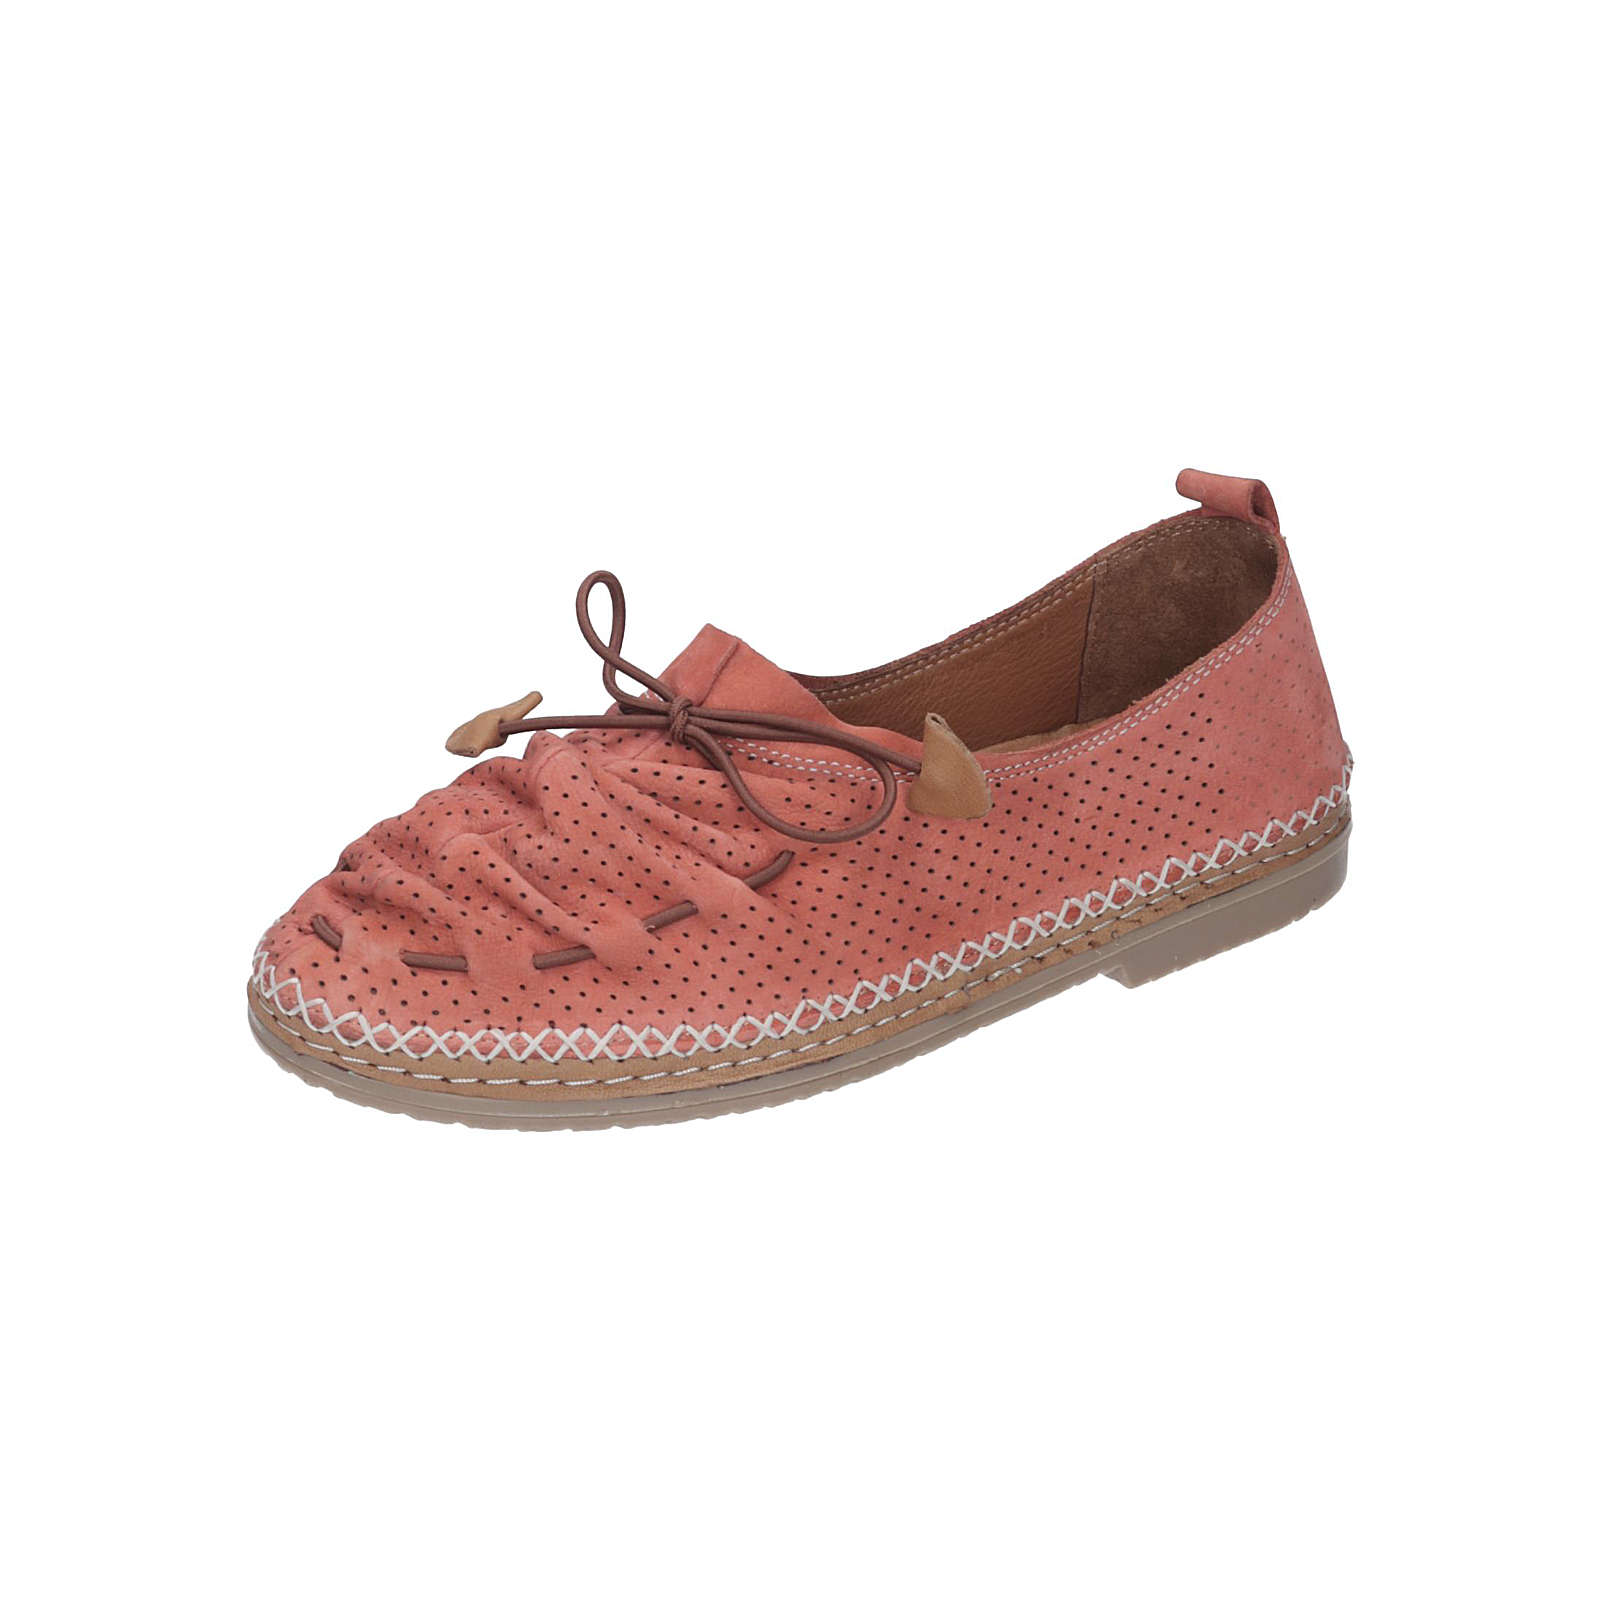 Manitu Damen Slipper orange Damen Gr. 36